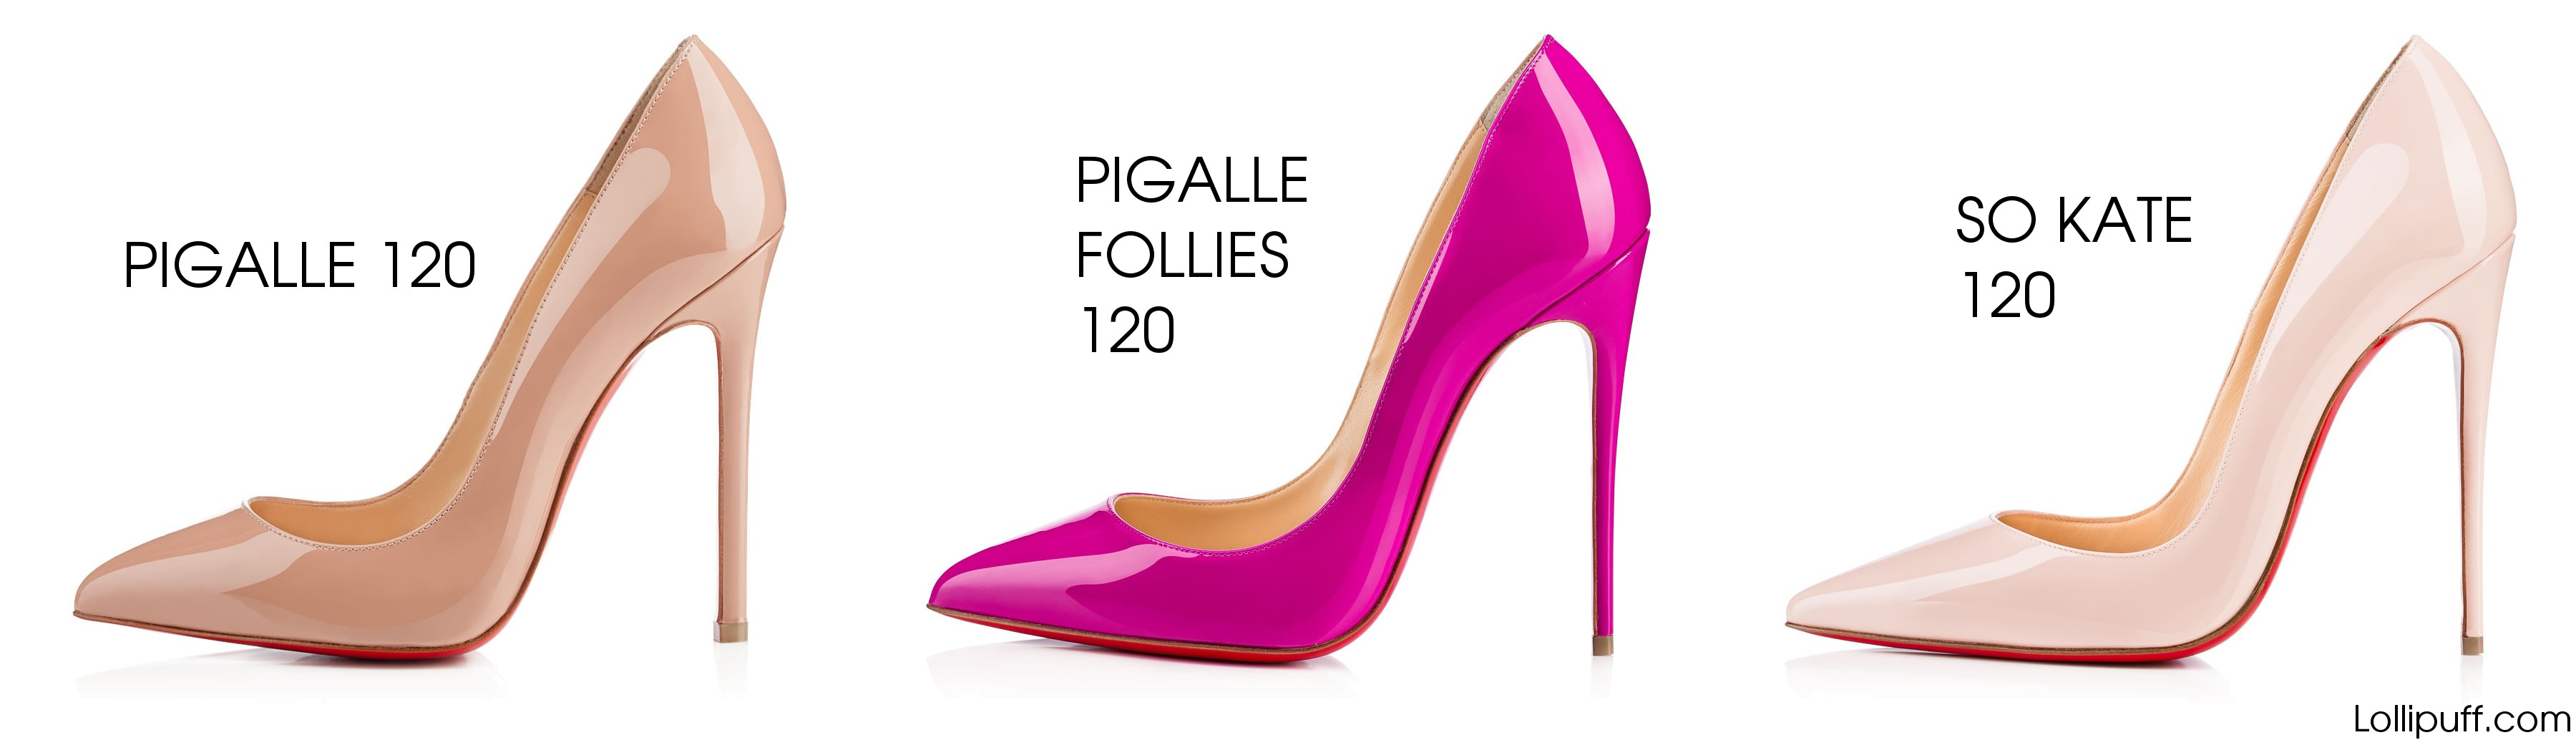 ae41eade7b90 Christian Louboutin Pigalle vs Pigalle Follies vs So Kate